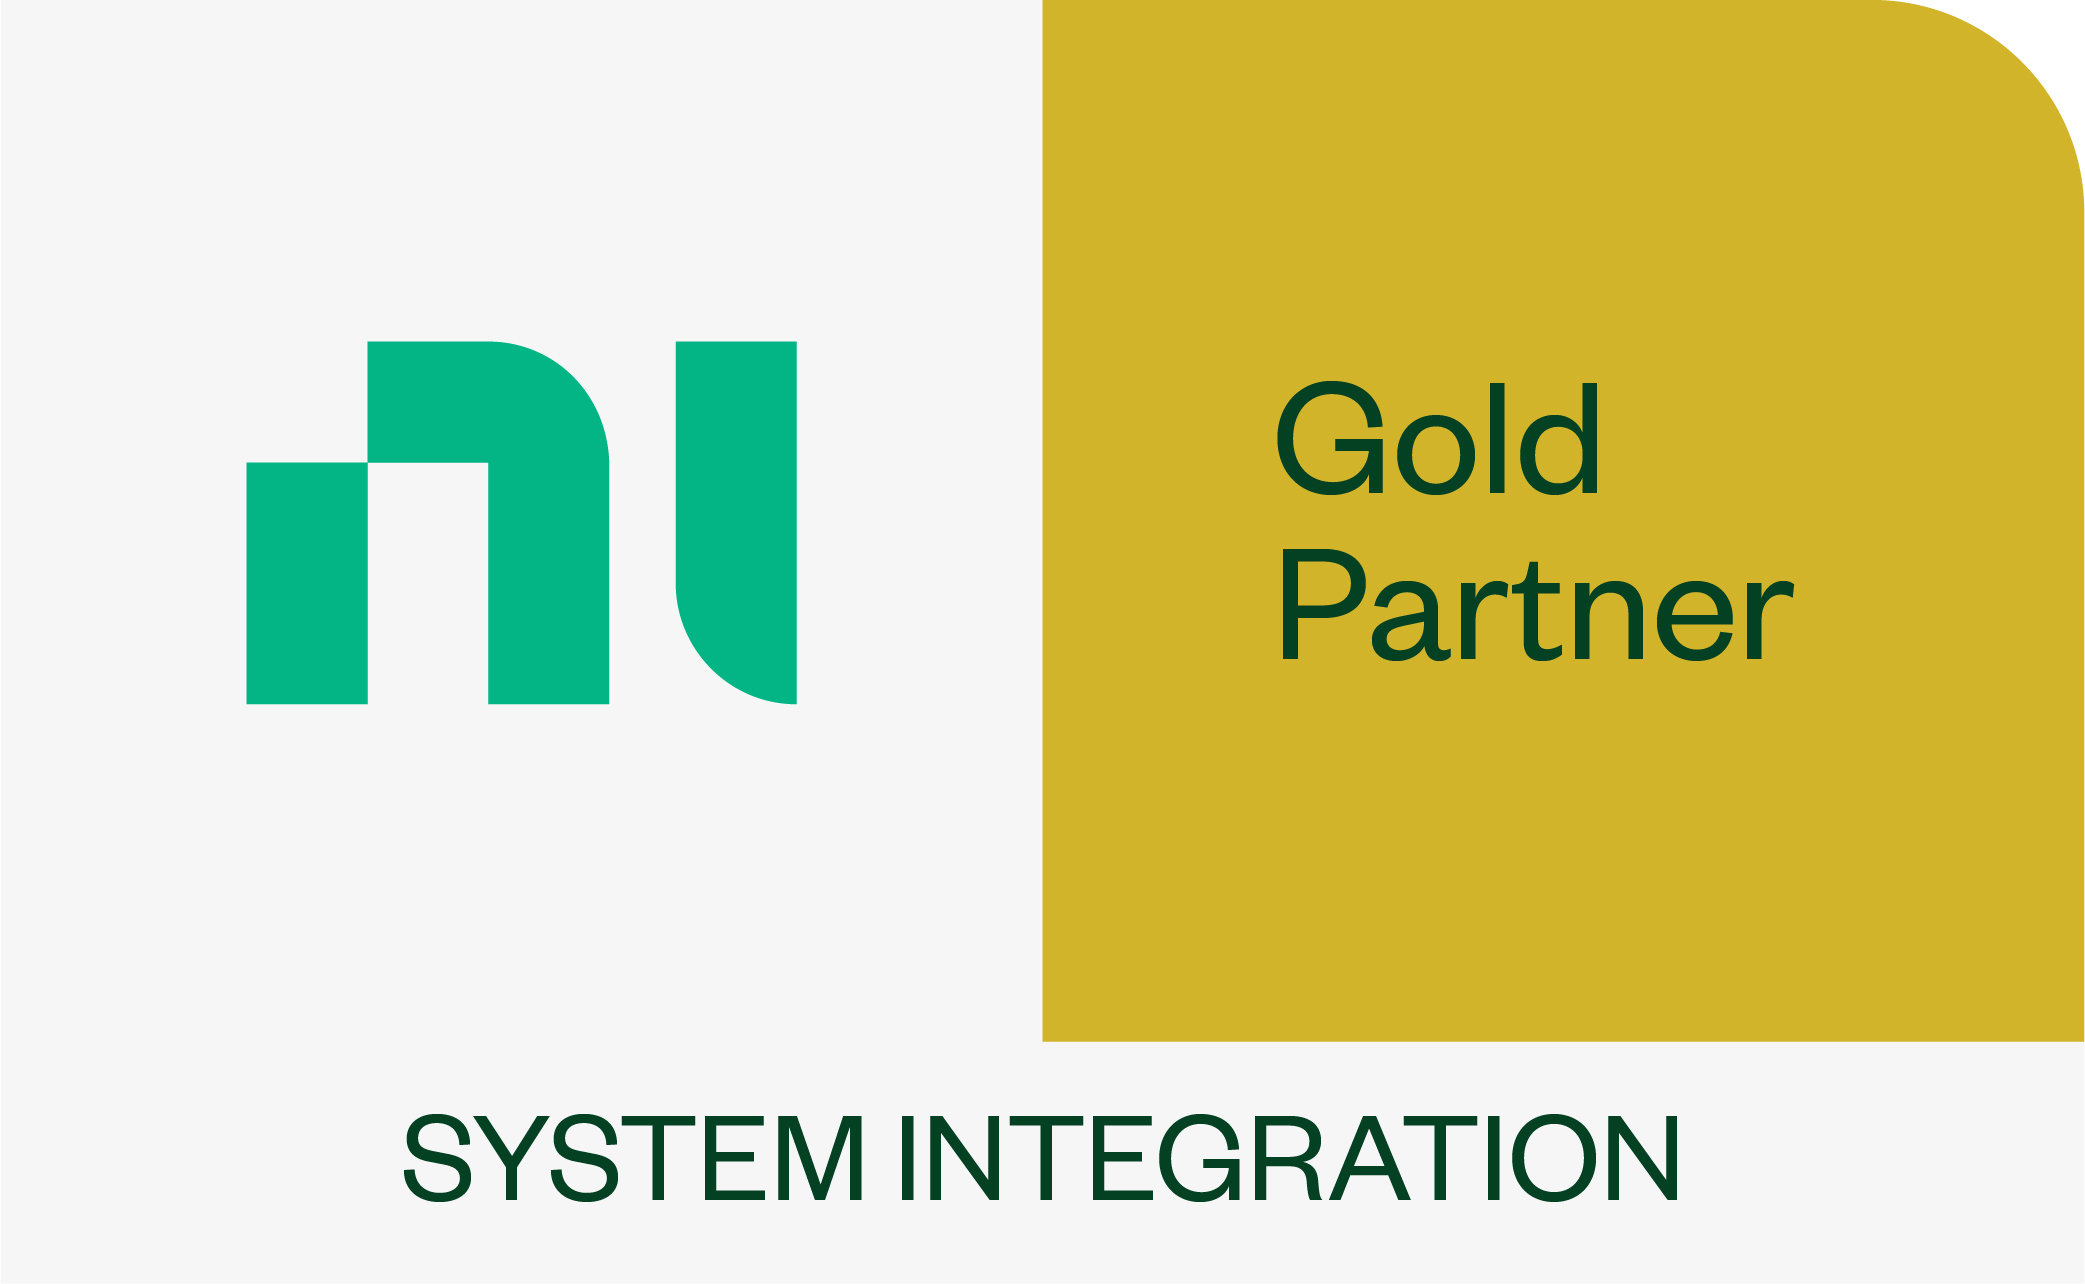 03 - NI_Partner_Program_RGB_System Integration - Gold Partner